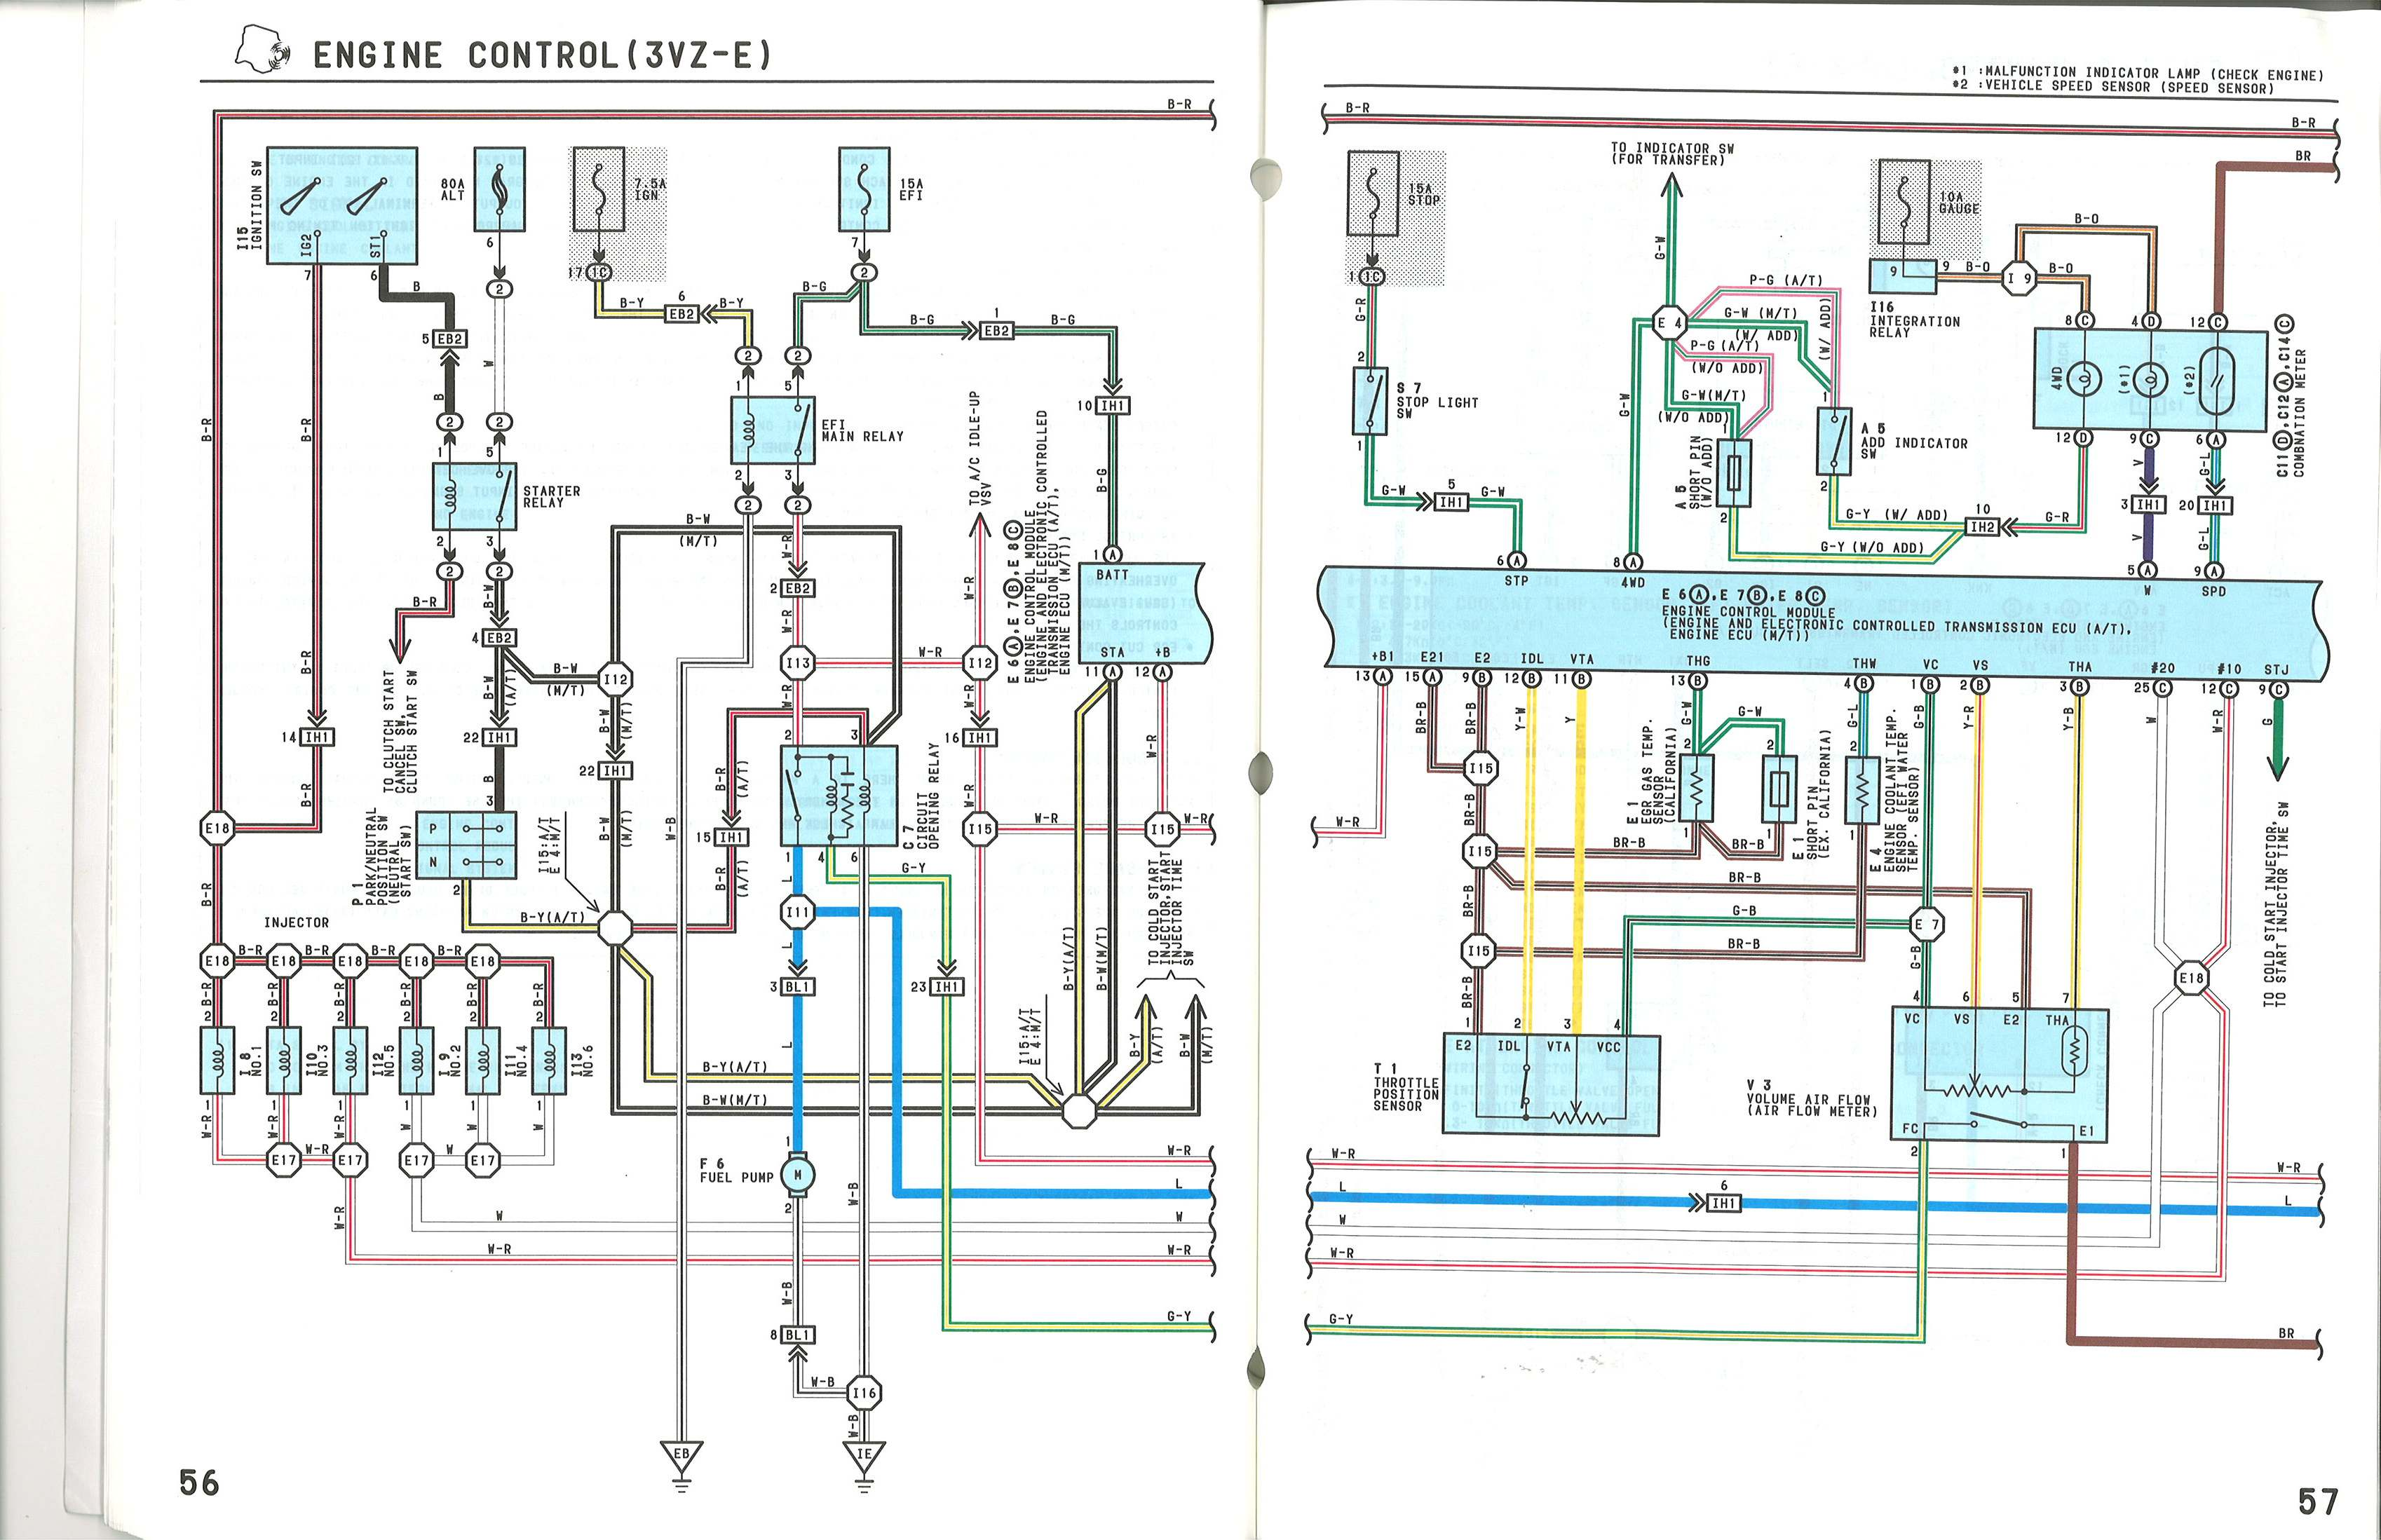 1988 toyota pickup wiring harness 1988 image ecu diagram for 1988 3vz e yotatech forums on 1988 toyota pickup wiring harness